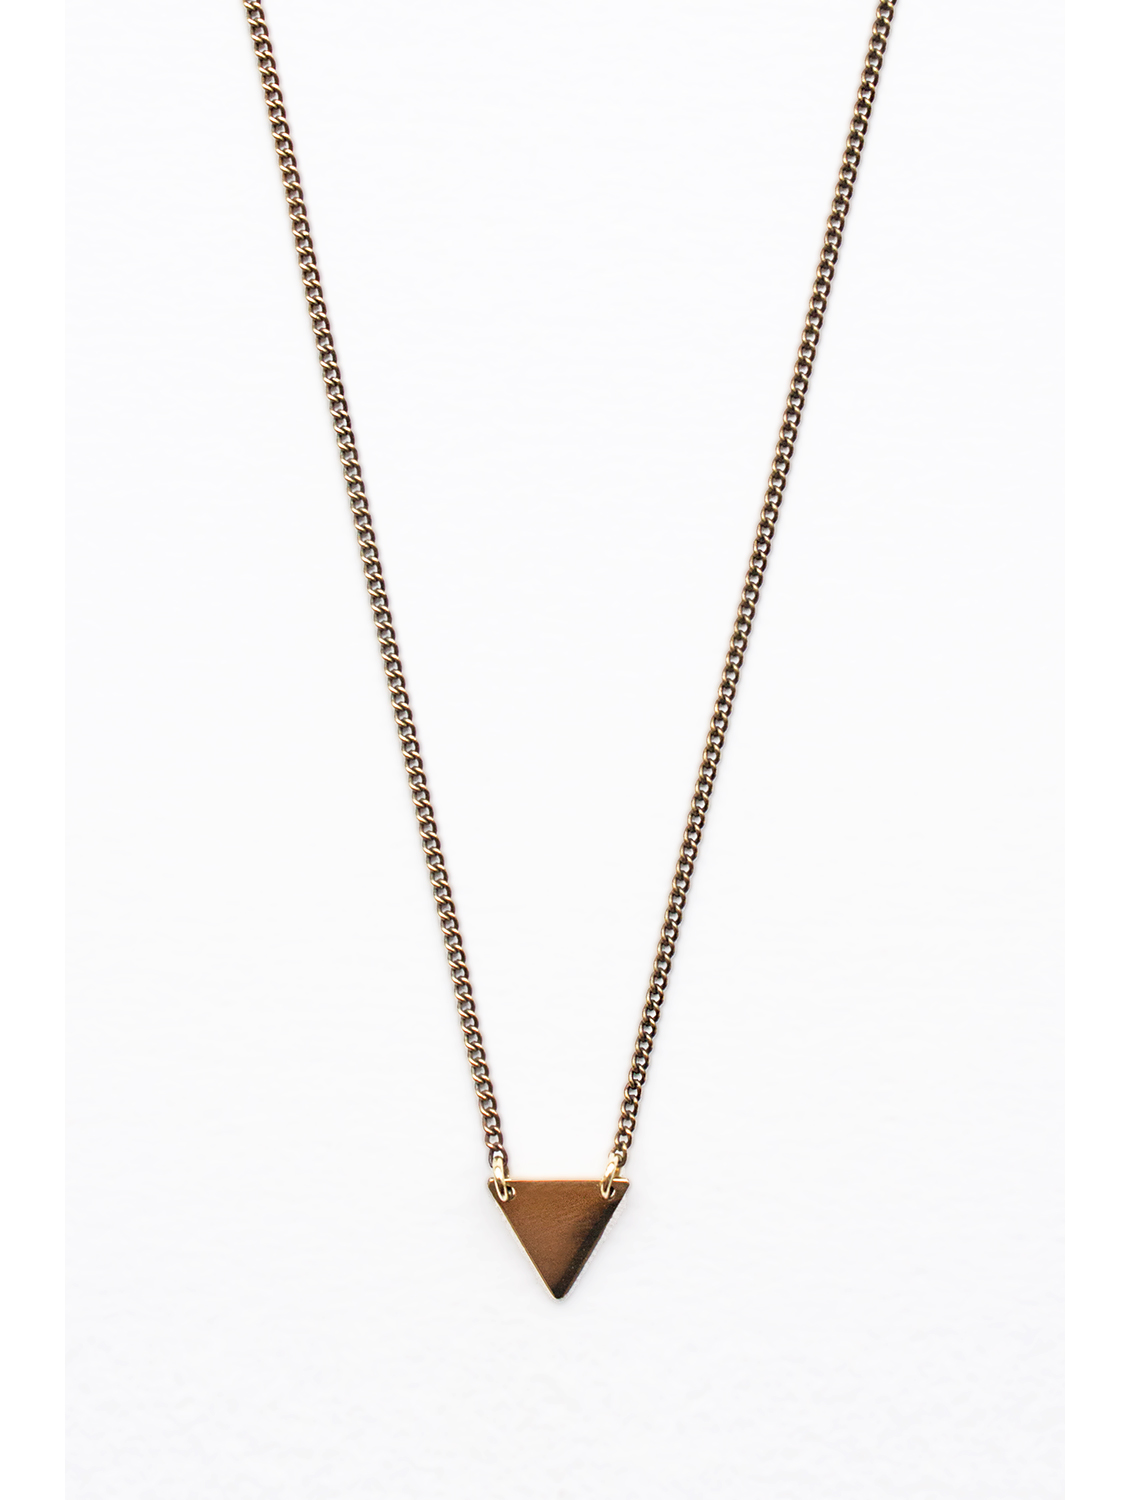 Three-angle-necklace-close